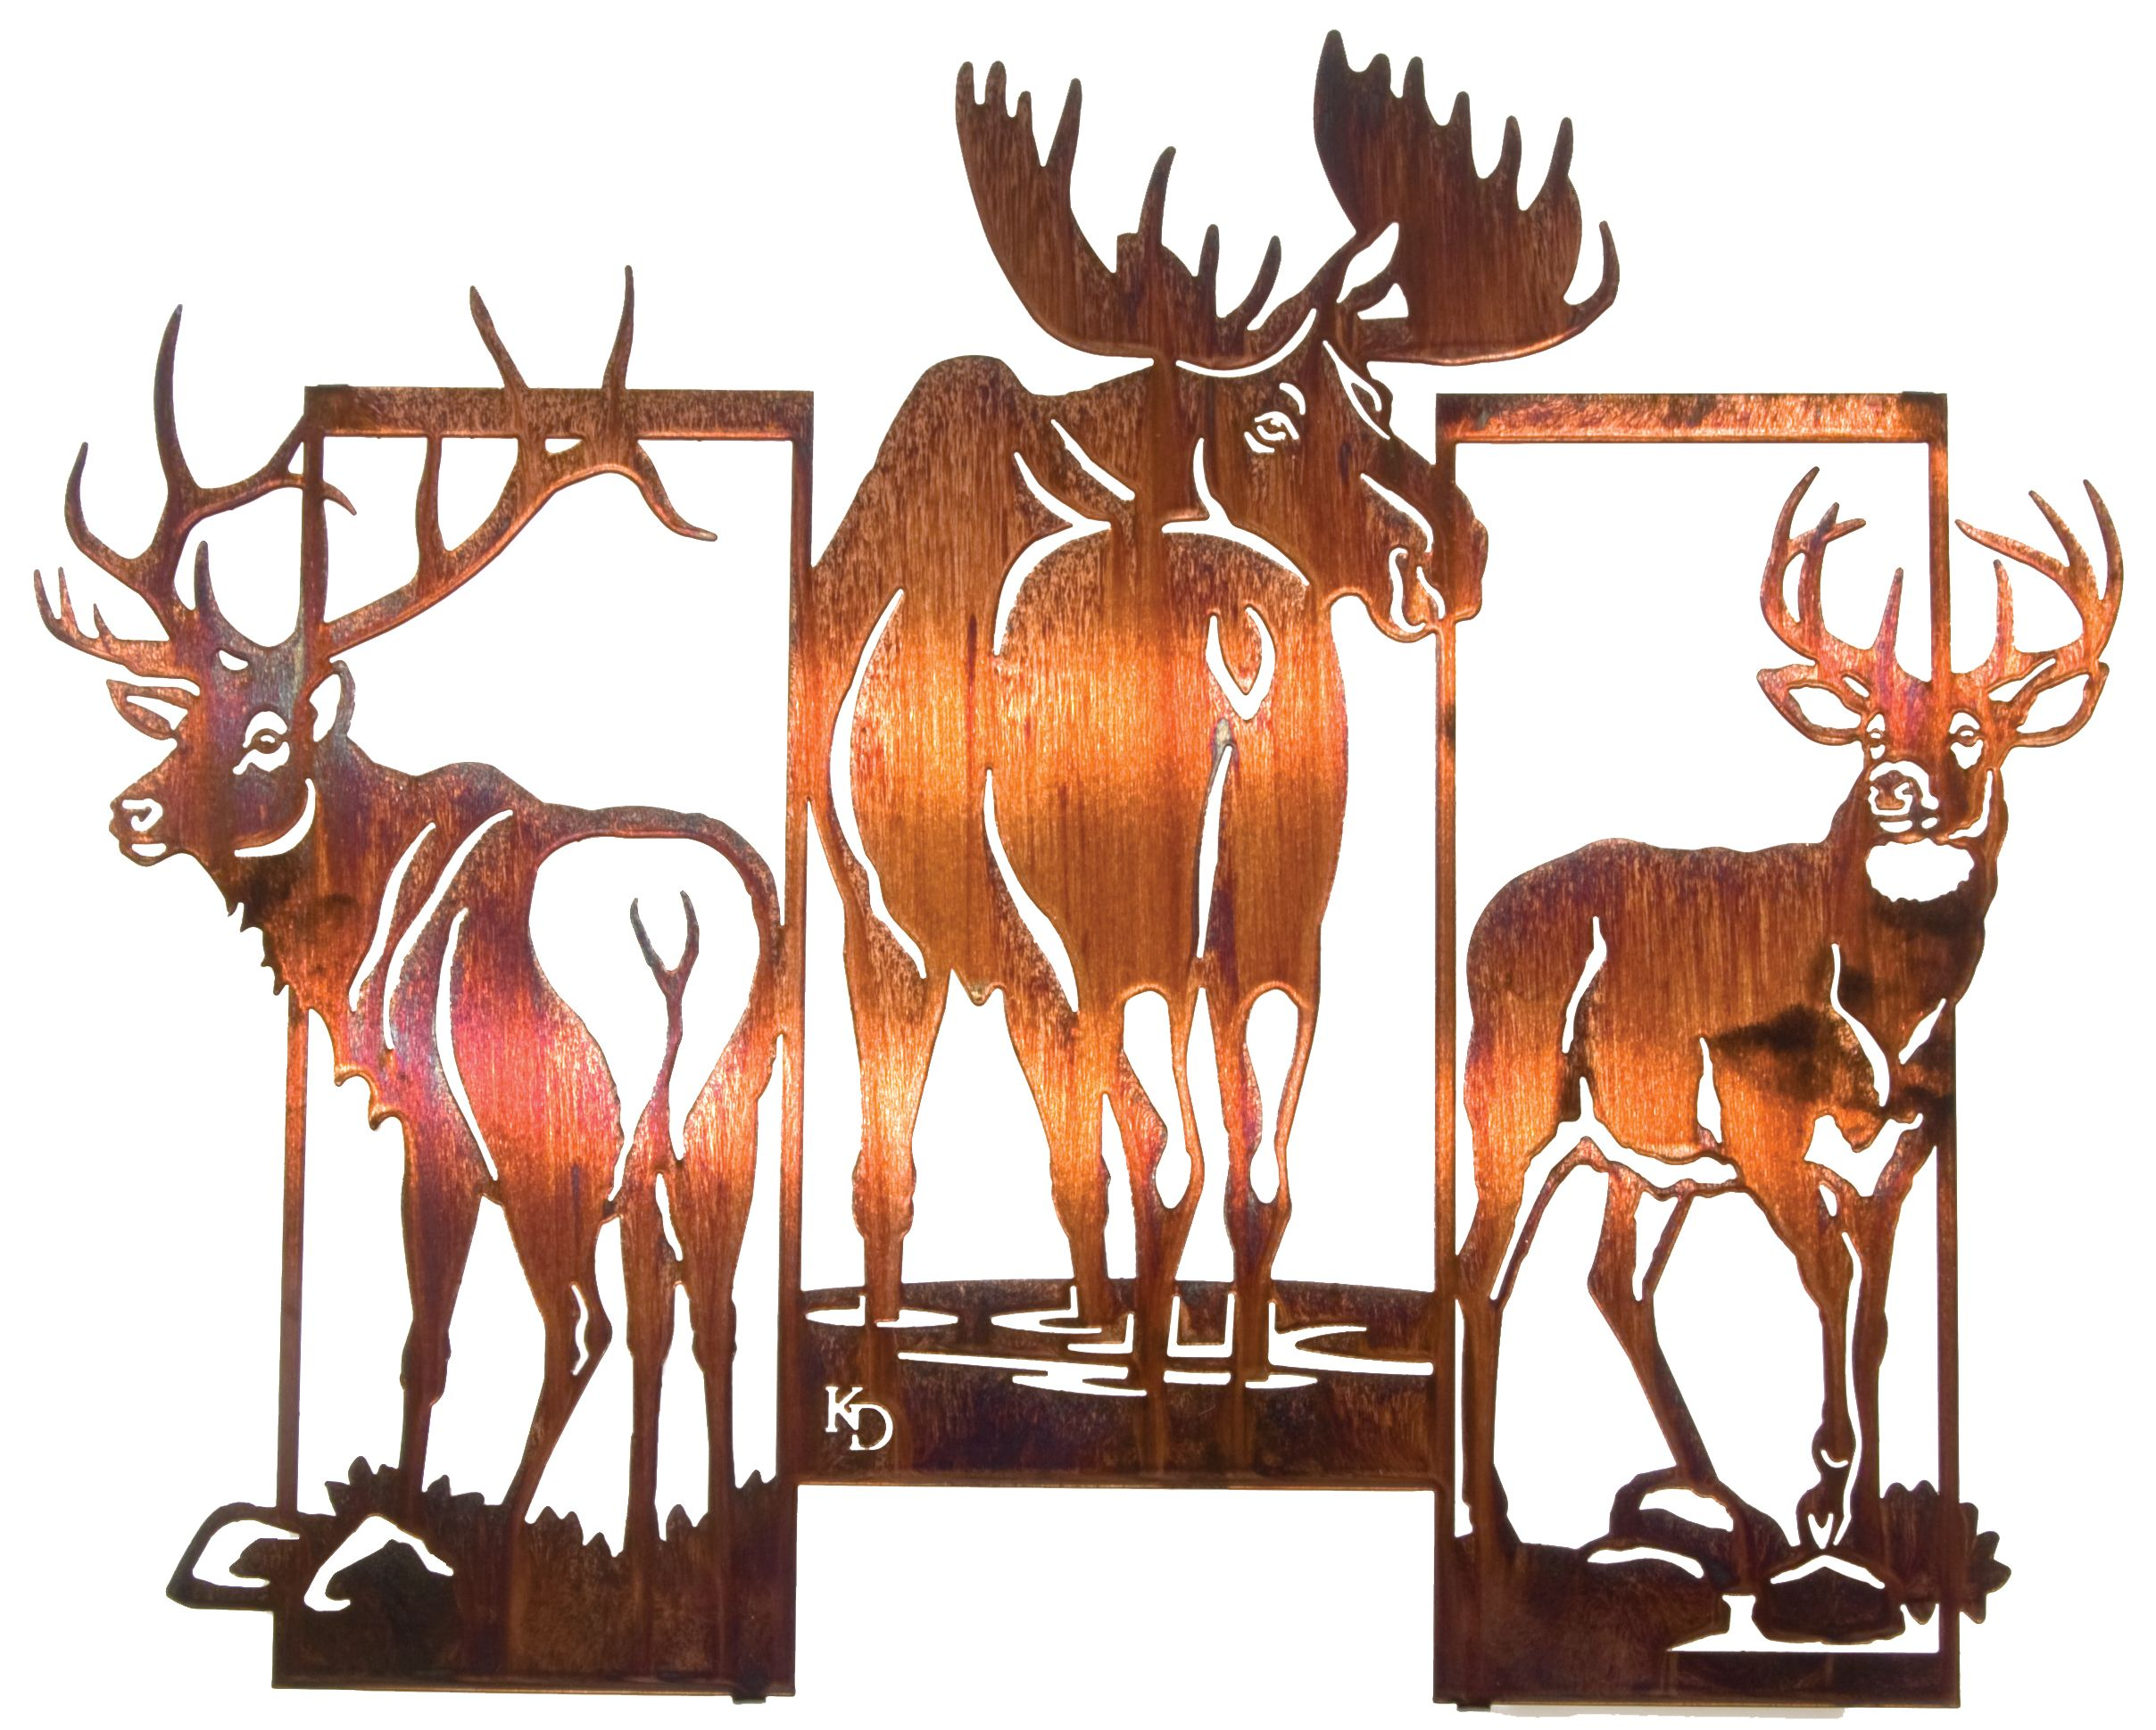 Three Framed Moose And Deer Wall Art Www Rusticeditions Com Kartiny Raskrashennye Kamni Risunki